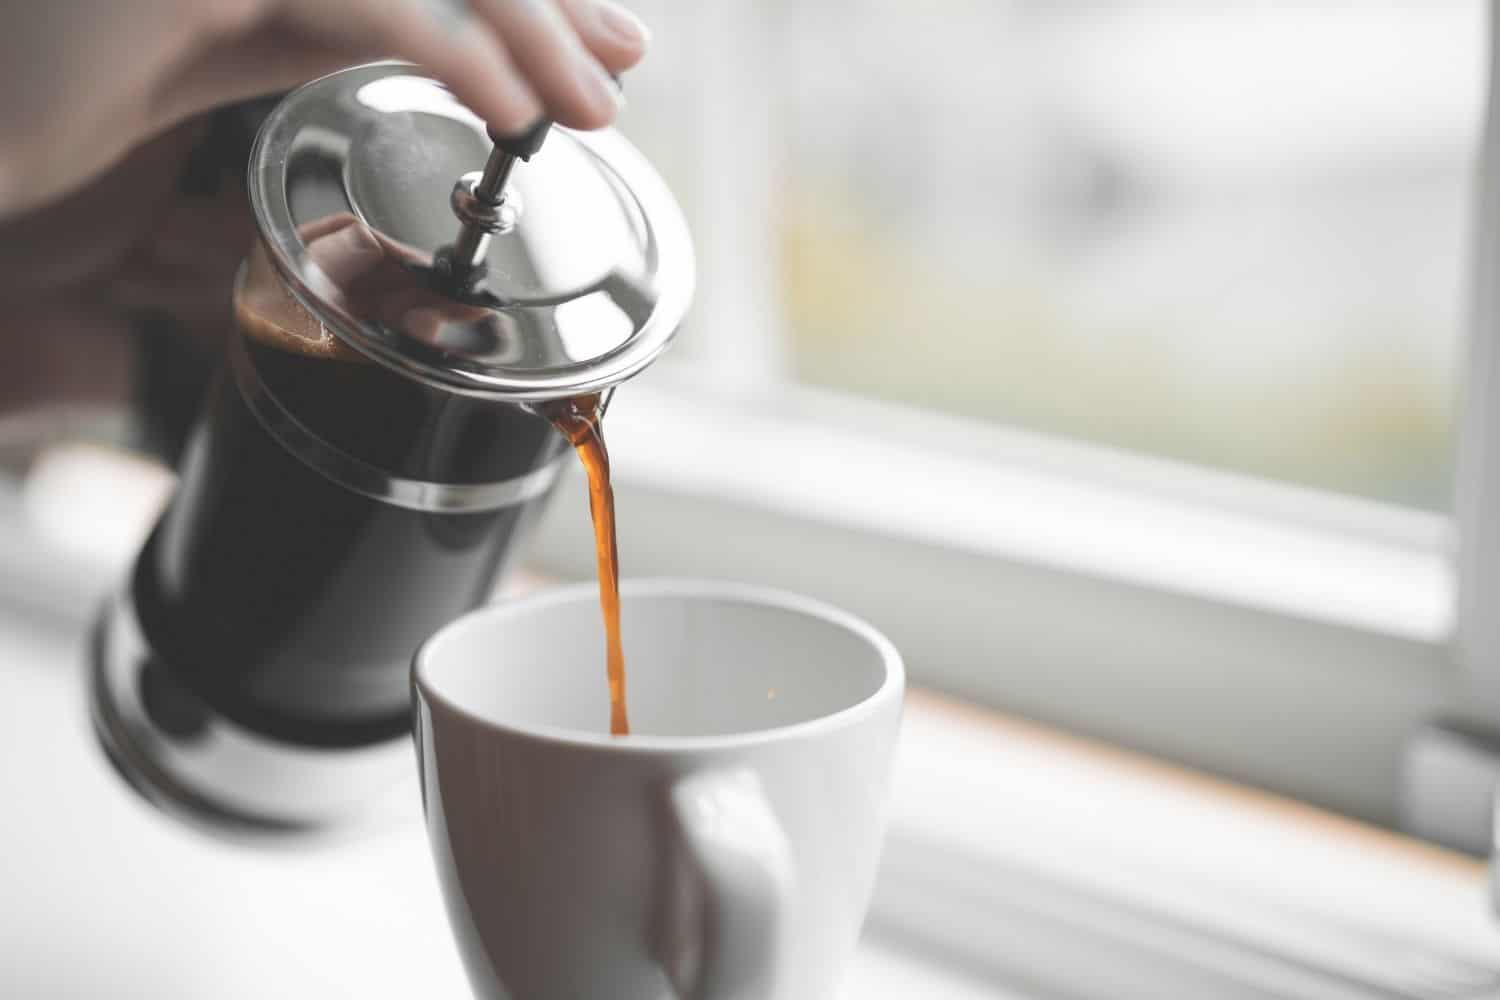 woman pouring french press coffee into a cup.